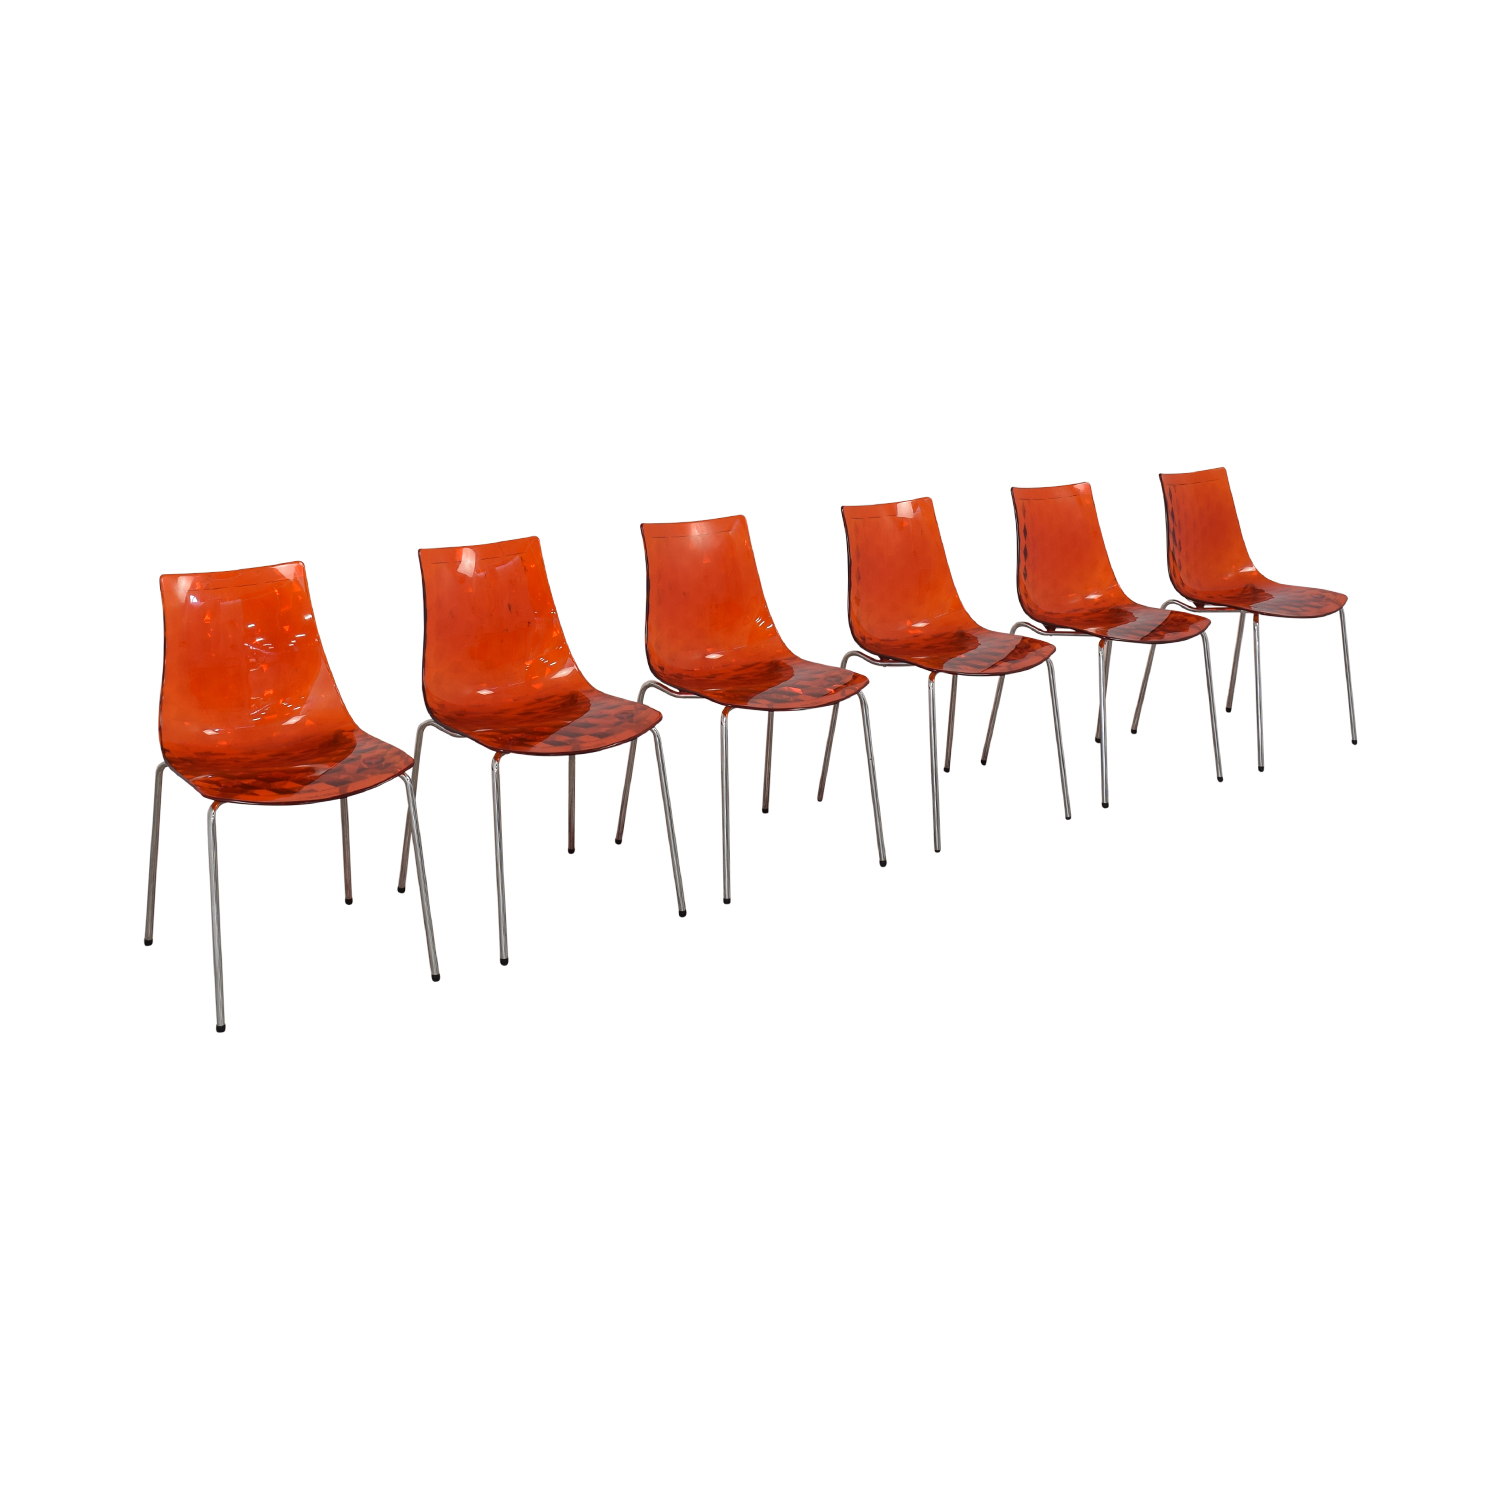 Calligaris Calligaris Ice Dining Chairs Chairs